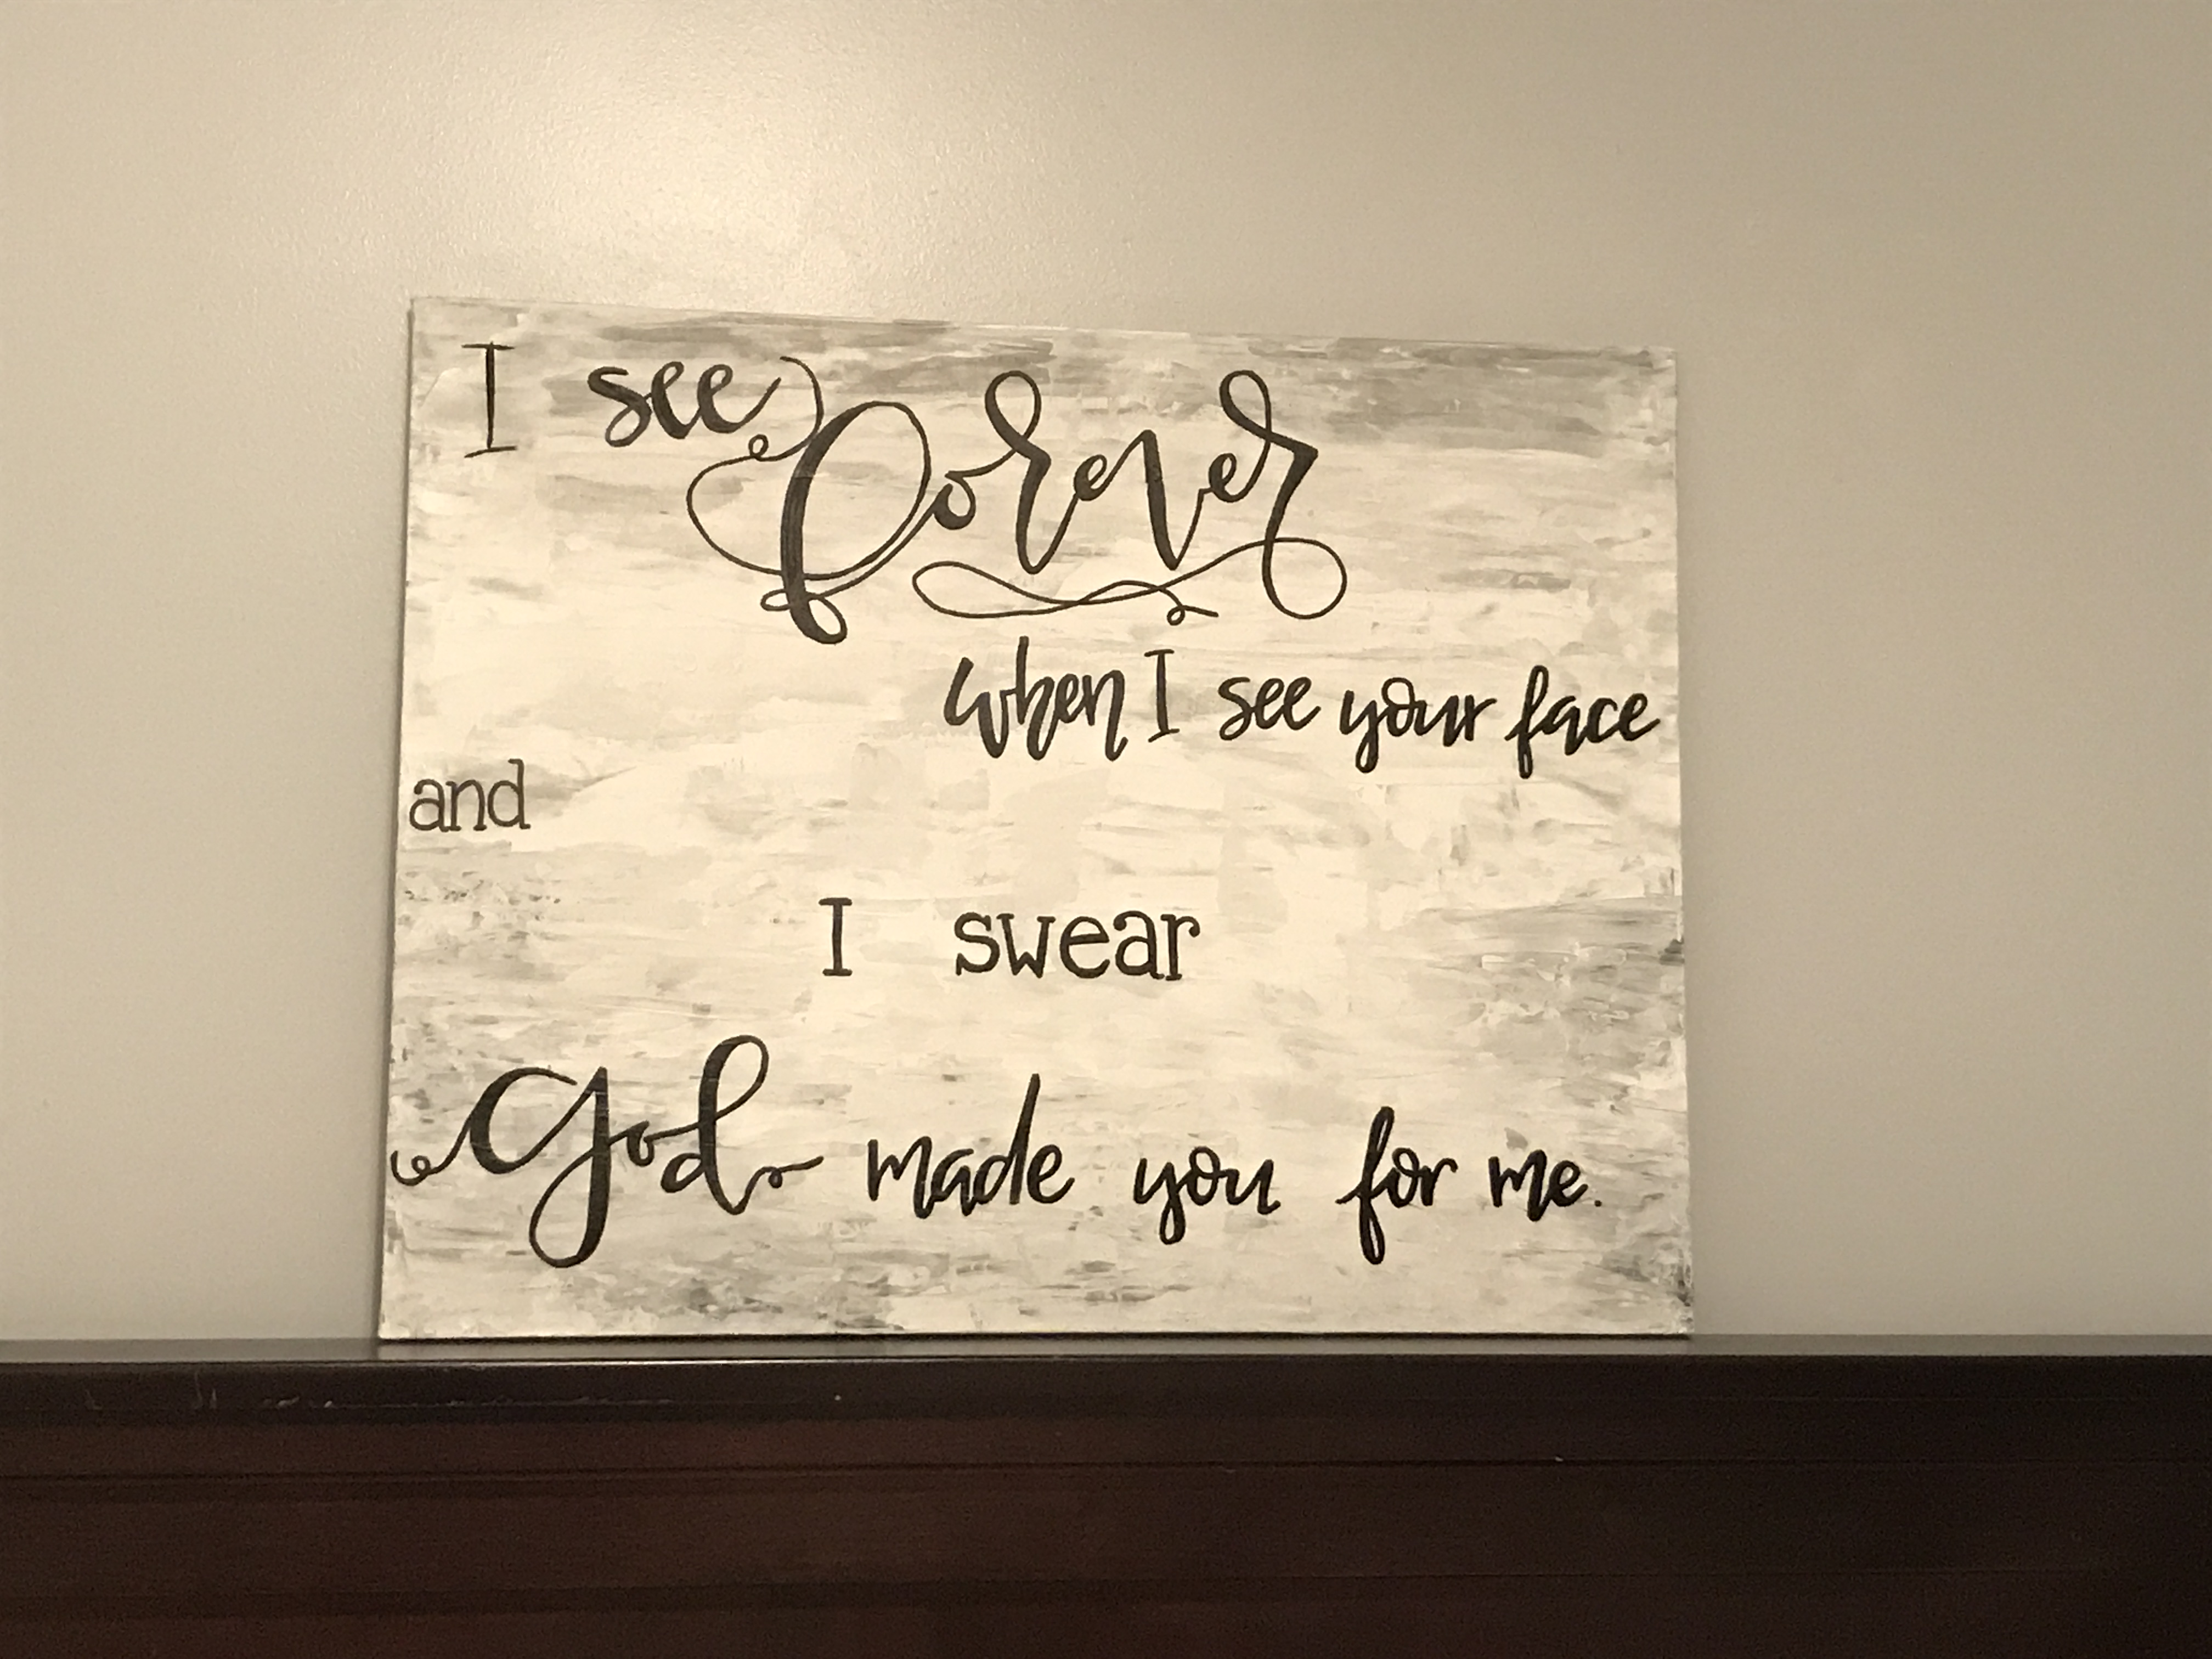 Forever | Painted and Hand-lettered with Acrylic on Canvas